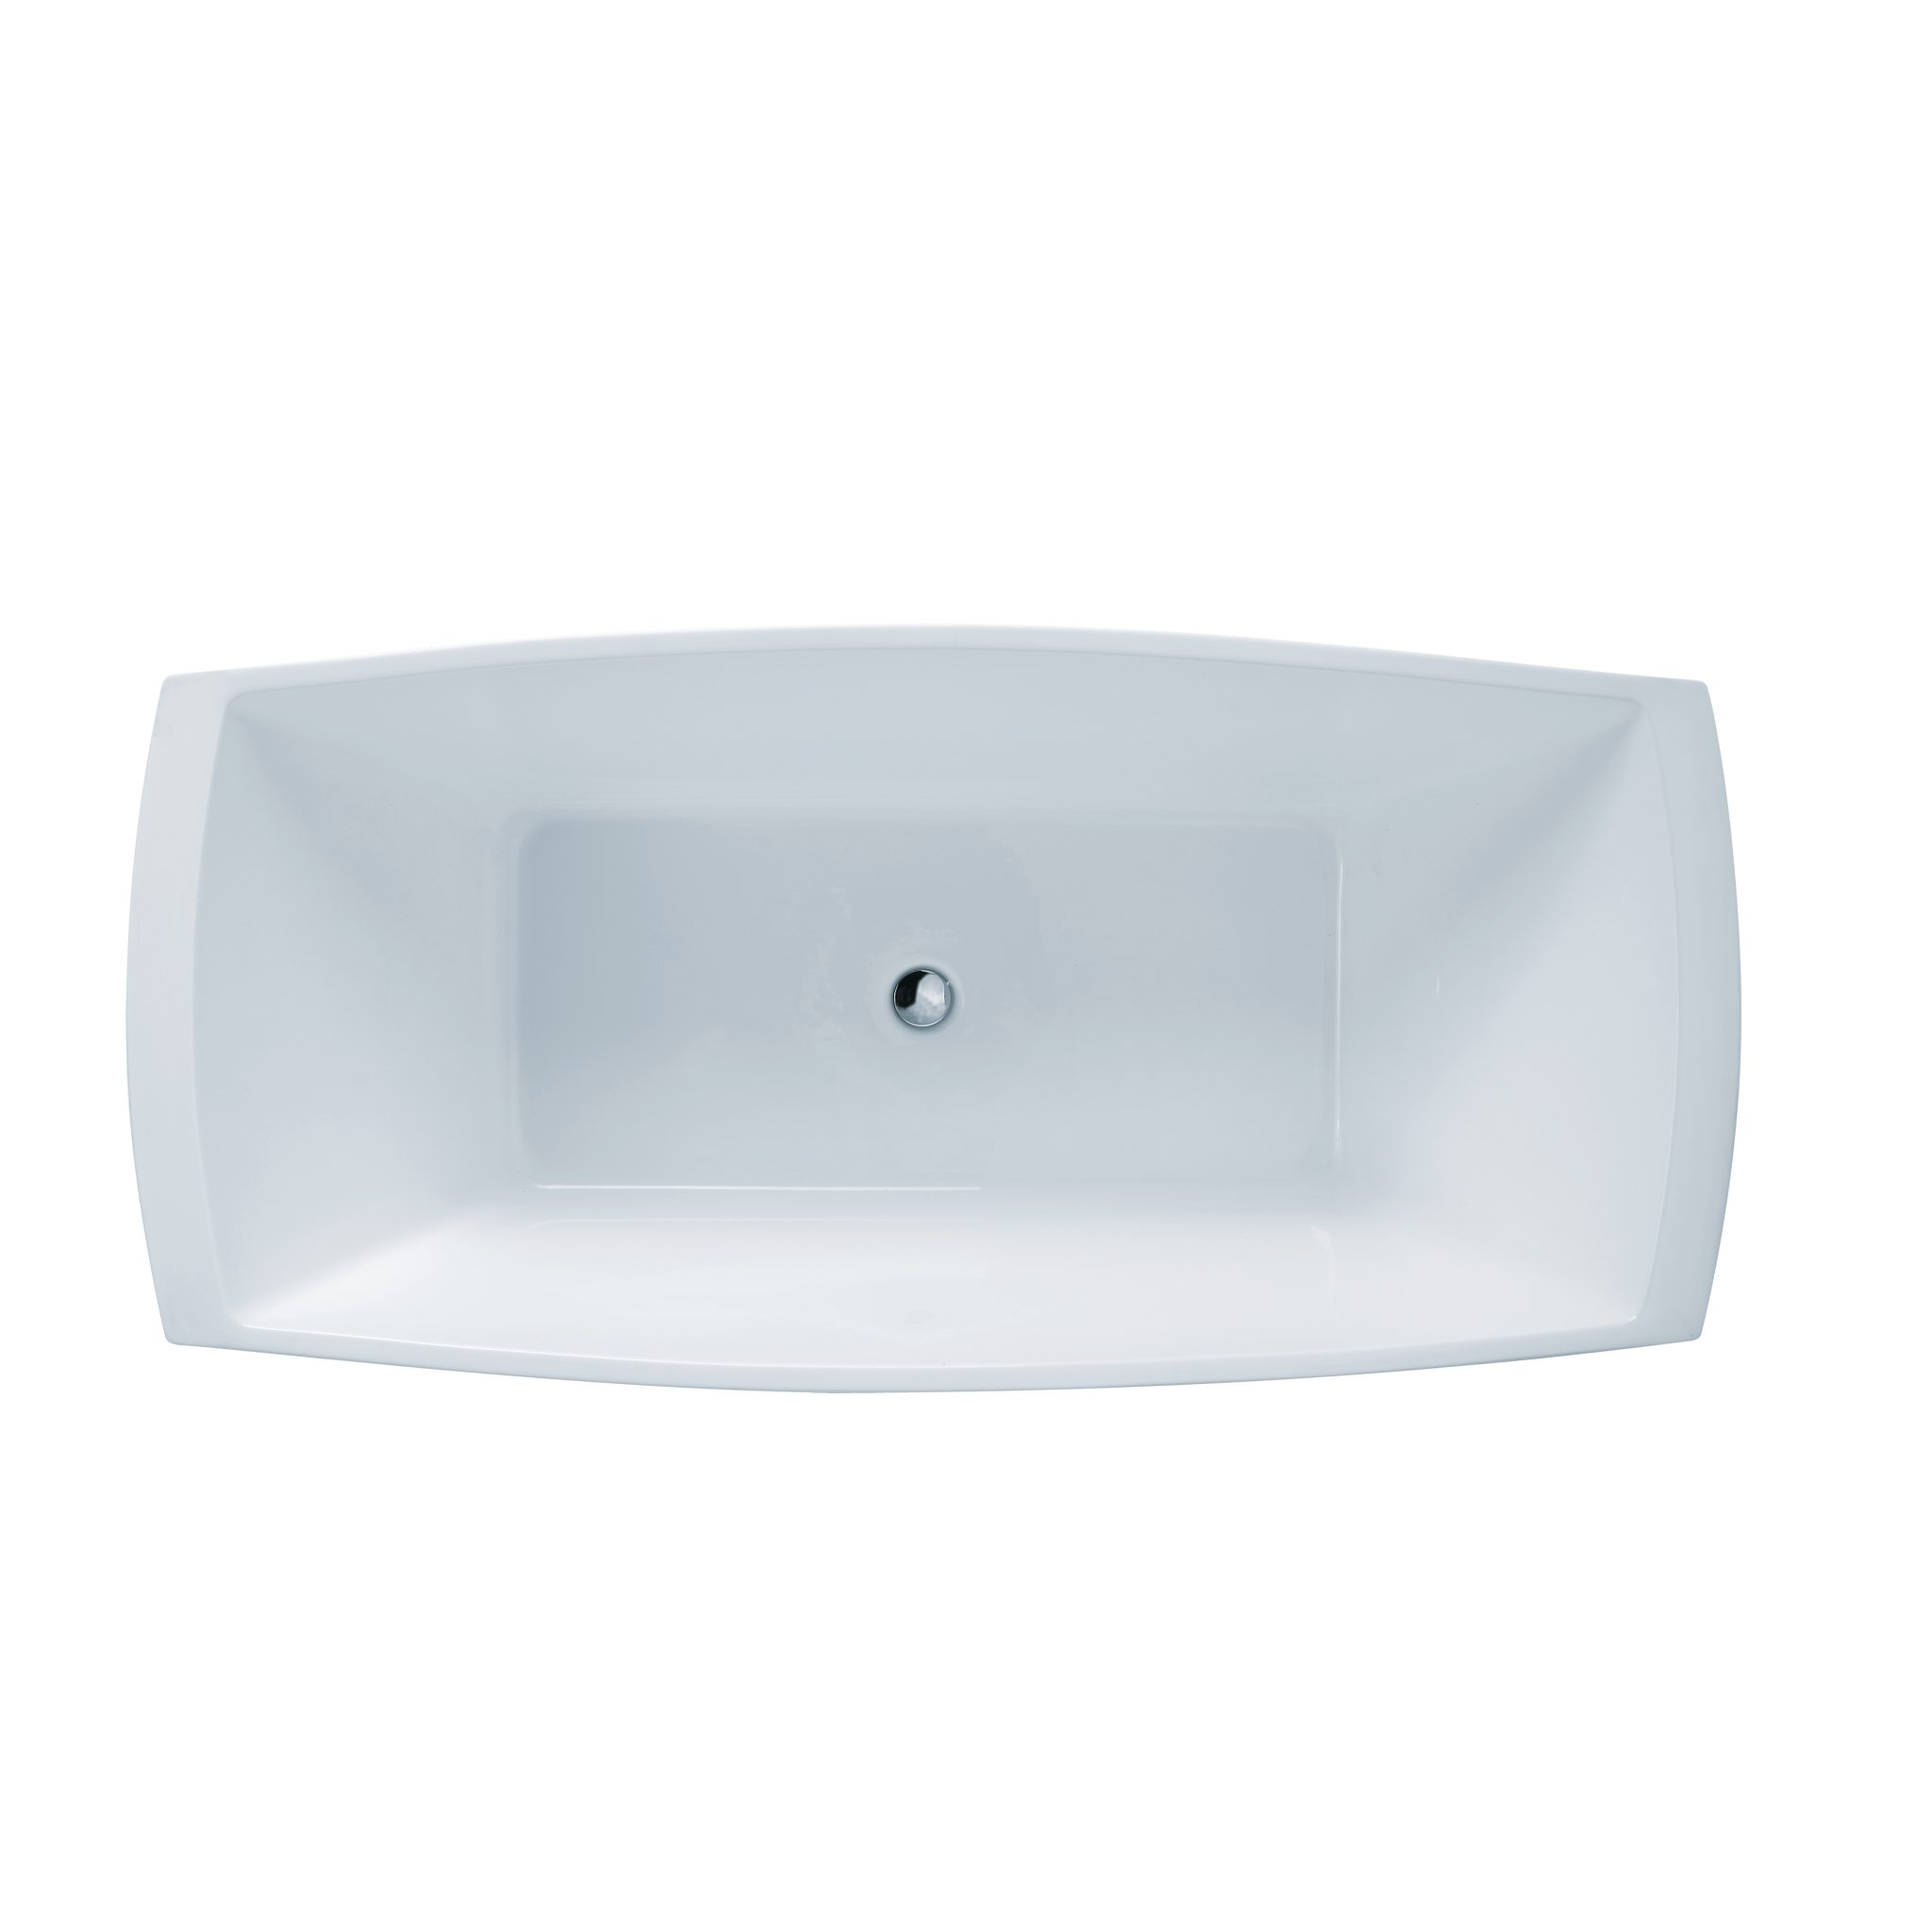 Island tub drain acri tec bath and kitchen products - Renoir Renoir_quadratto Renoir